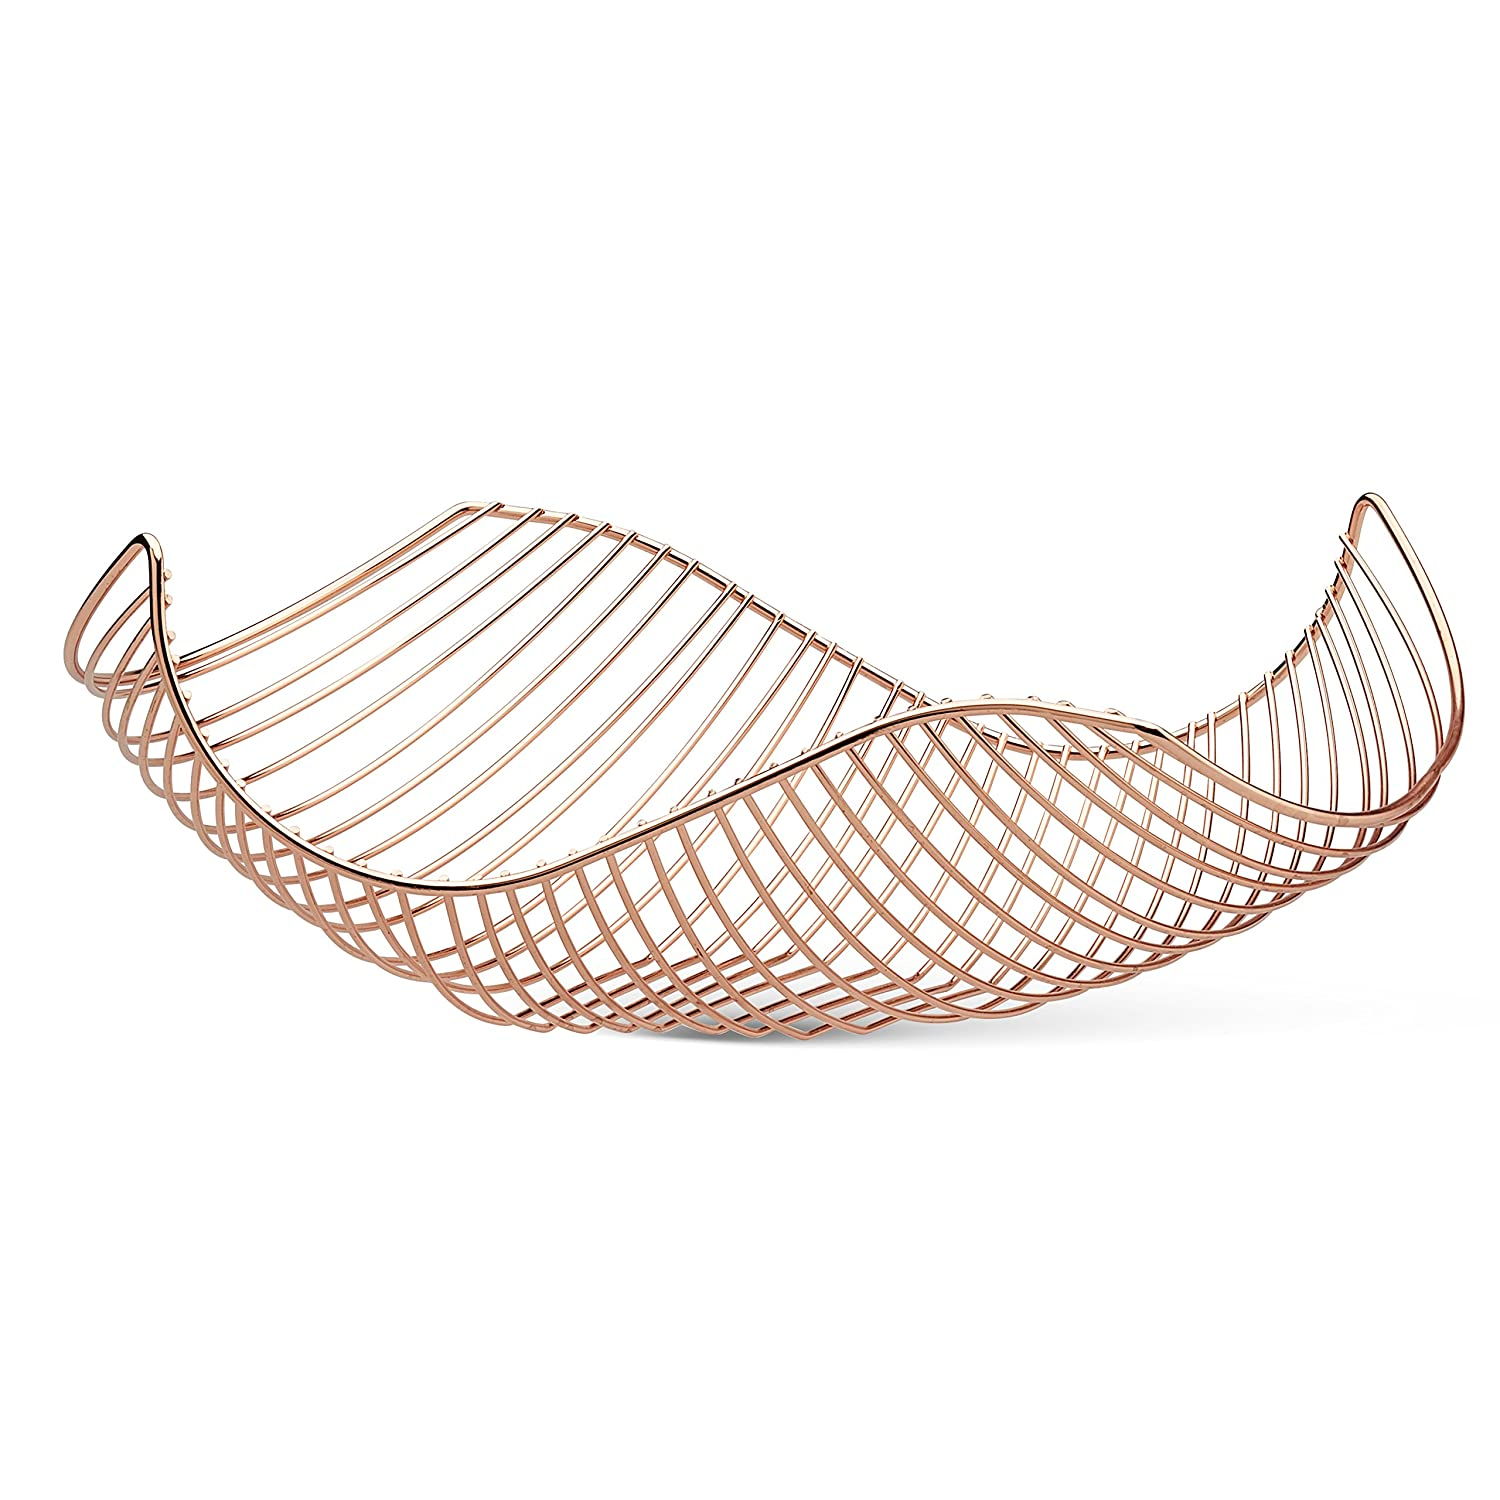 Vistella Fruit Bowl Basket in Copper Rose Gold - 5 Colors Available - Stainless Steel Wire Design with Modern Styling - Decorative Countertop Centerpiece